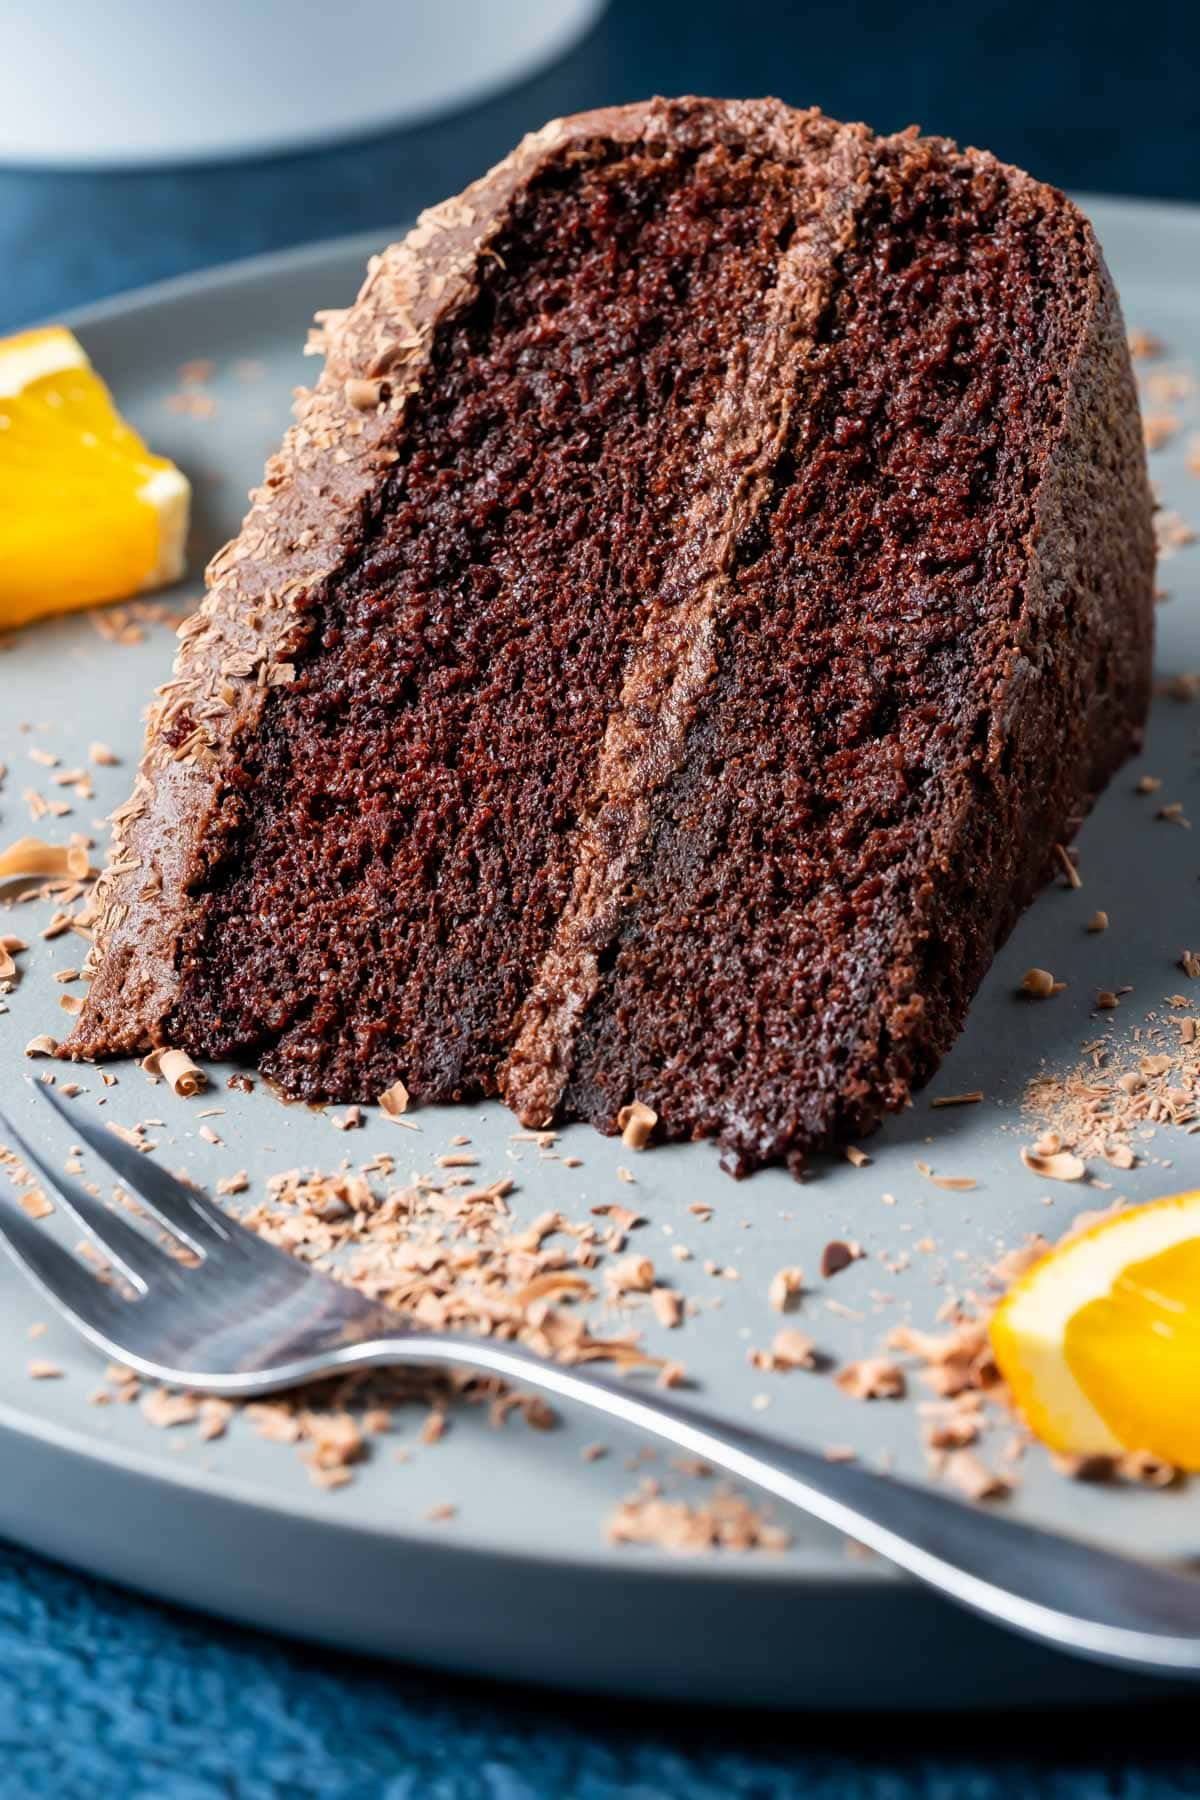 Slice of chocolate orange cake on a plate with a cake fork.